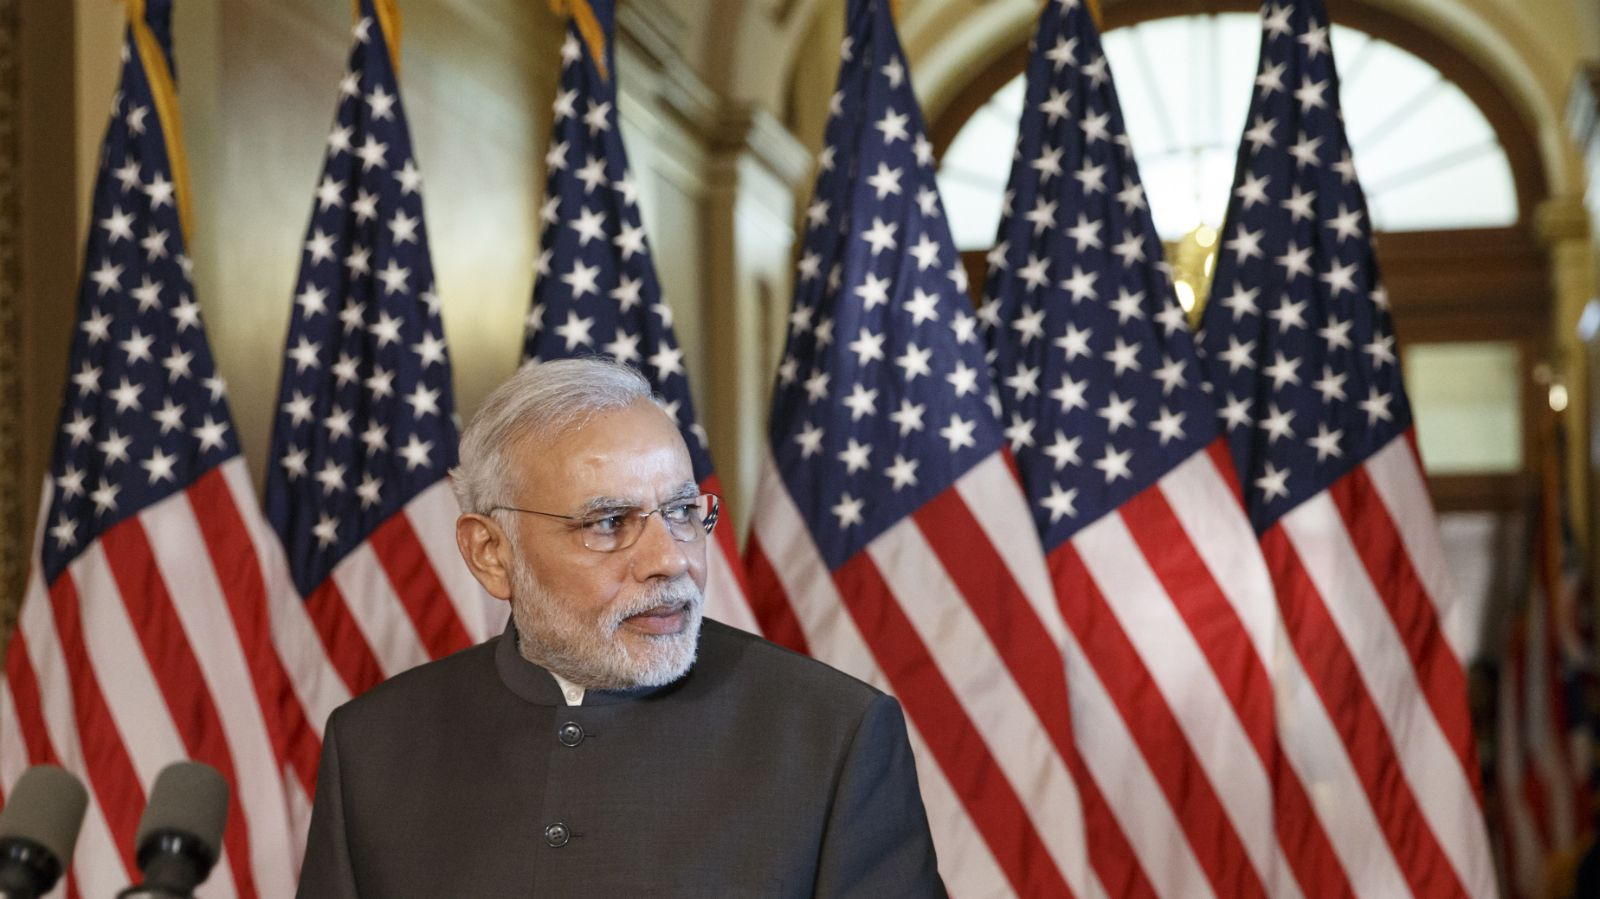 Indian Prime Minister Narendra Modi waits for the arrival of leaders of the House to make a statement, Tuesday, Sept. 30, 2014, on Capitol Hill in Washington. Earlier, the prime minister met with President Barack Obama at the White House and toured the Martin Luther King Jr. memorial with President Barack Obama.